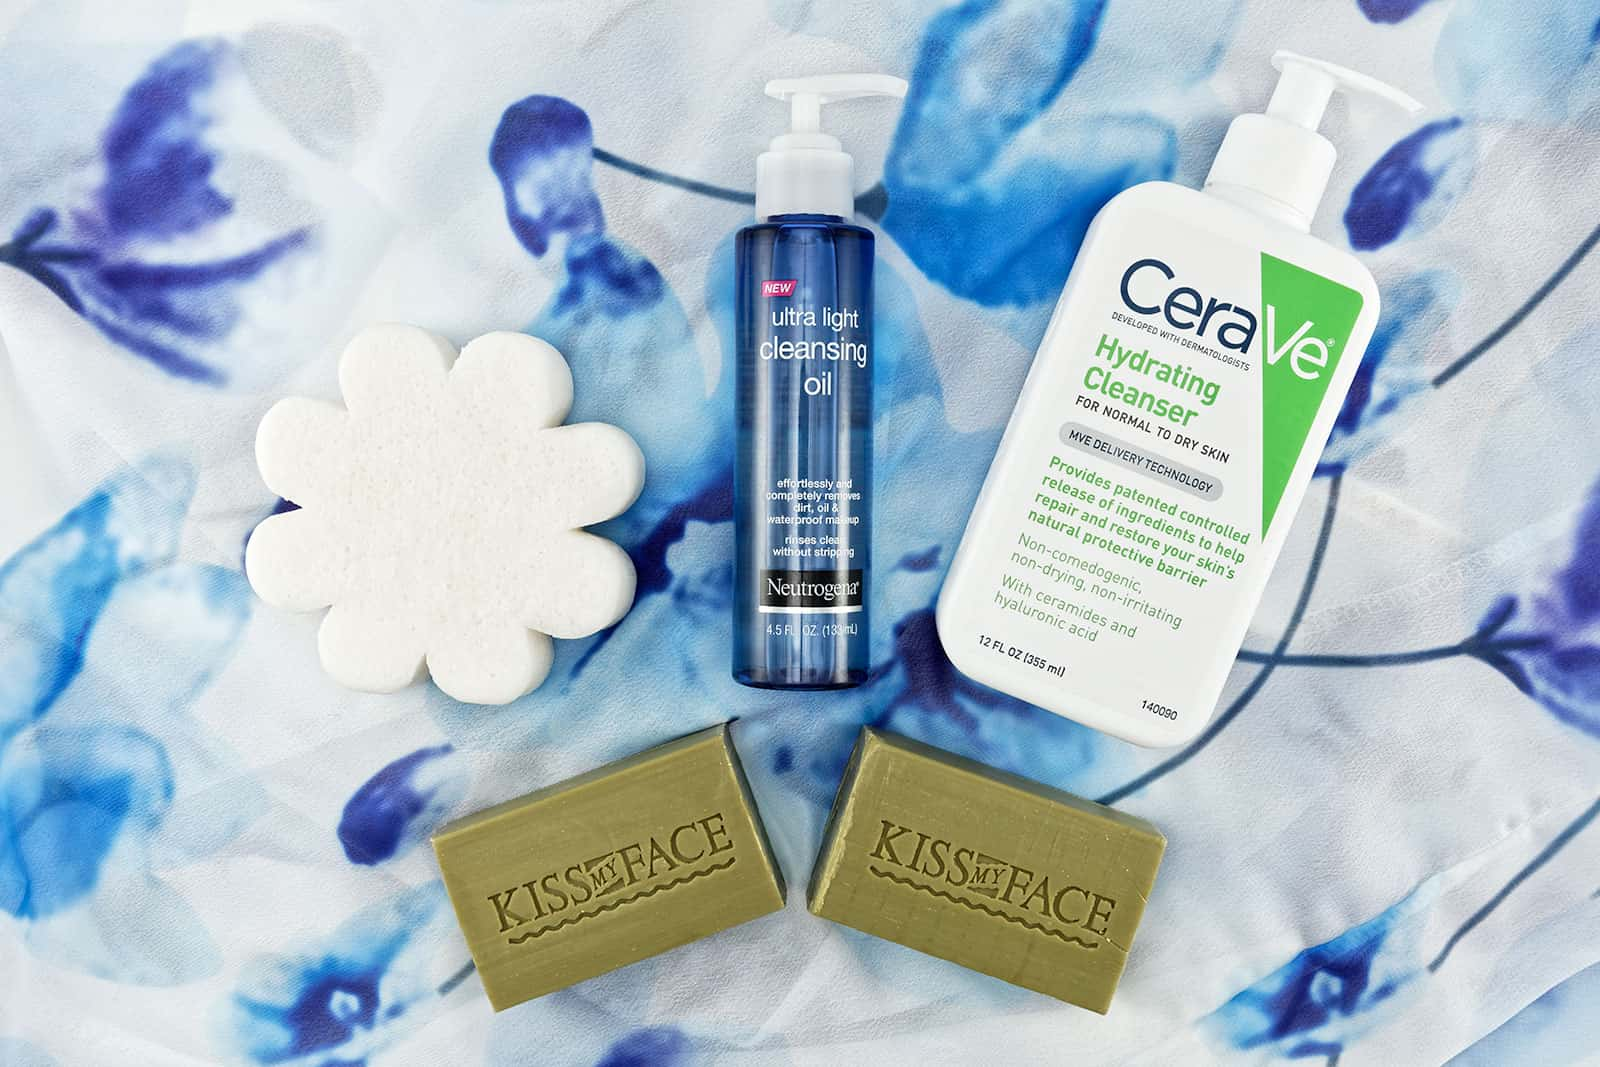 Items for Double Cleanse